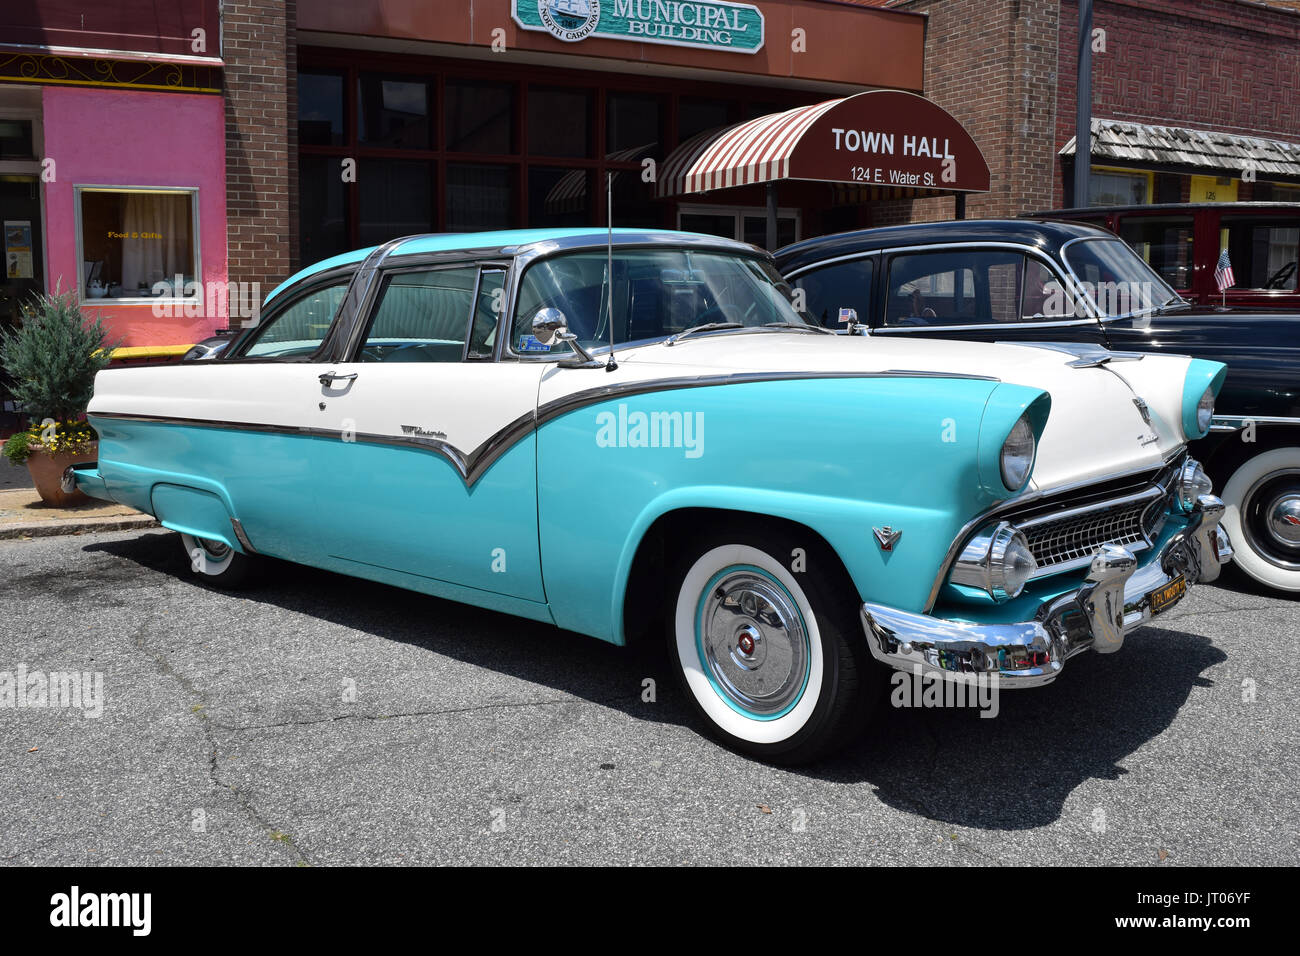 1955 ford fairlane crown victoria blog cars on line - 1955 Ford Crown Victoria Stock Image